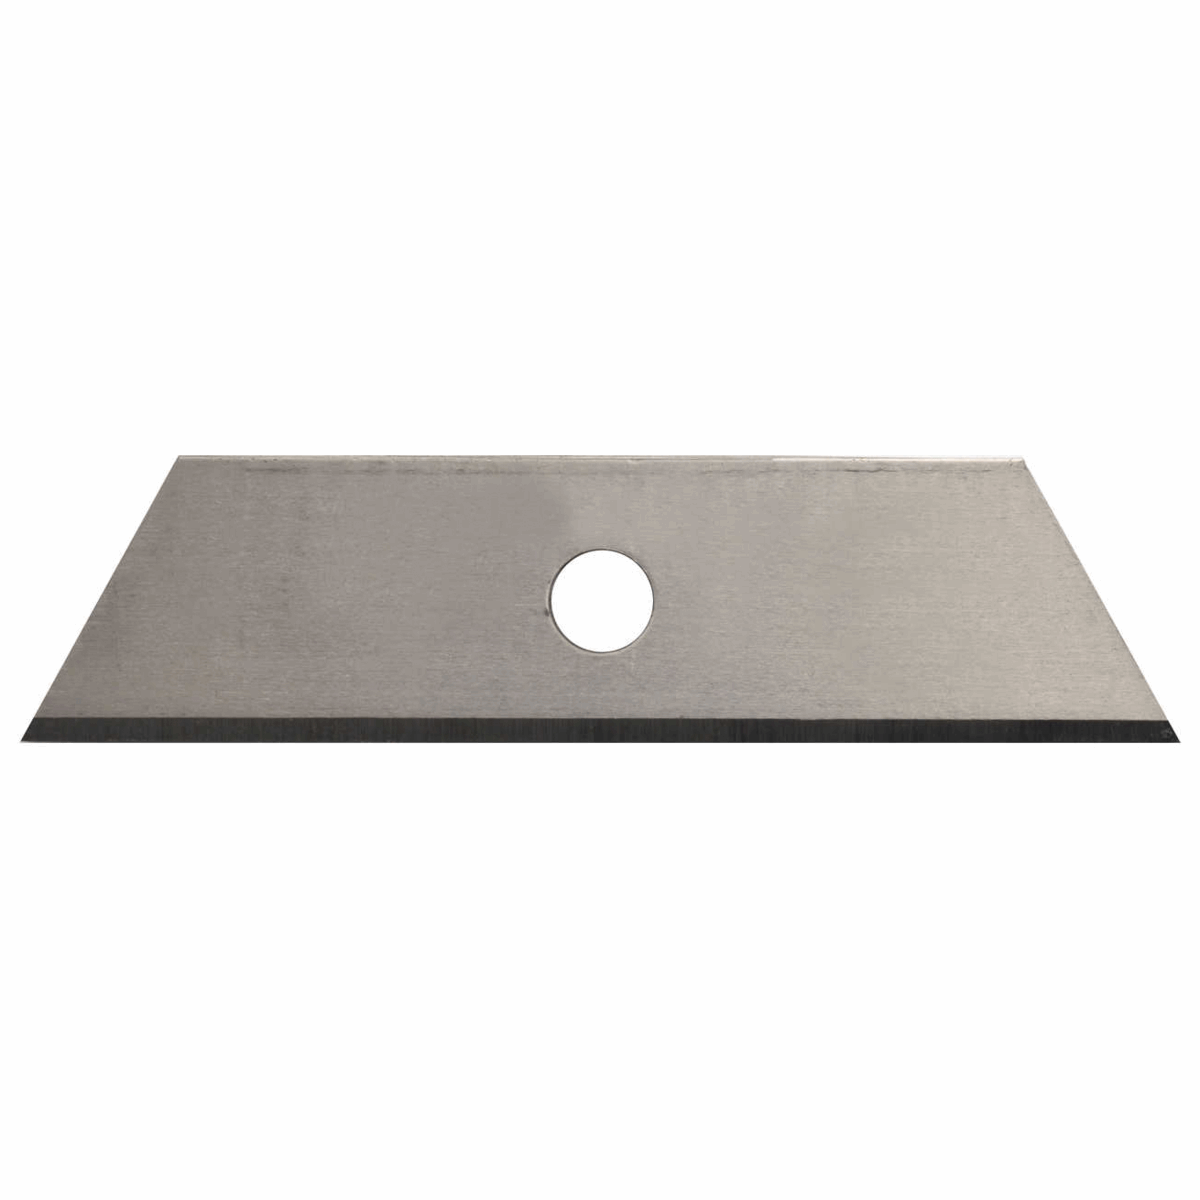 Picture of Trapezoidal Blades for Safety Cutter (x10)